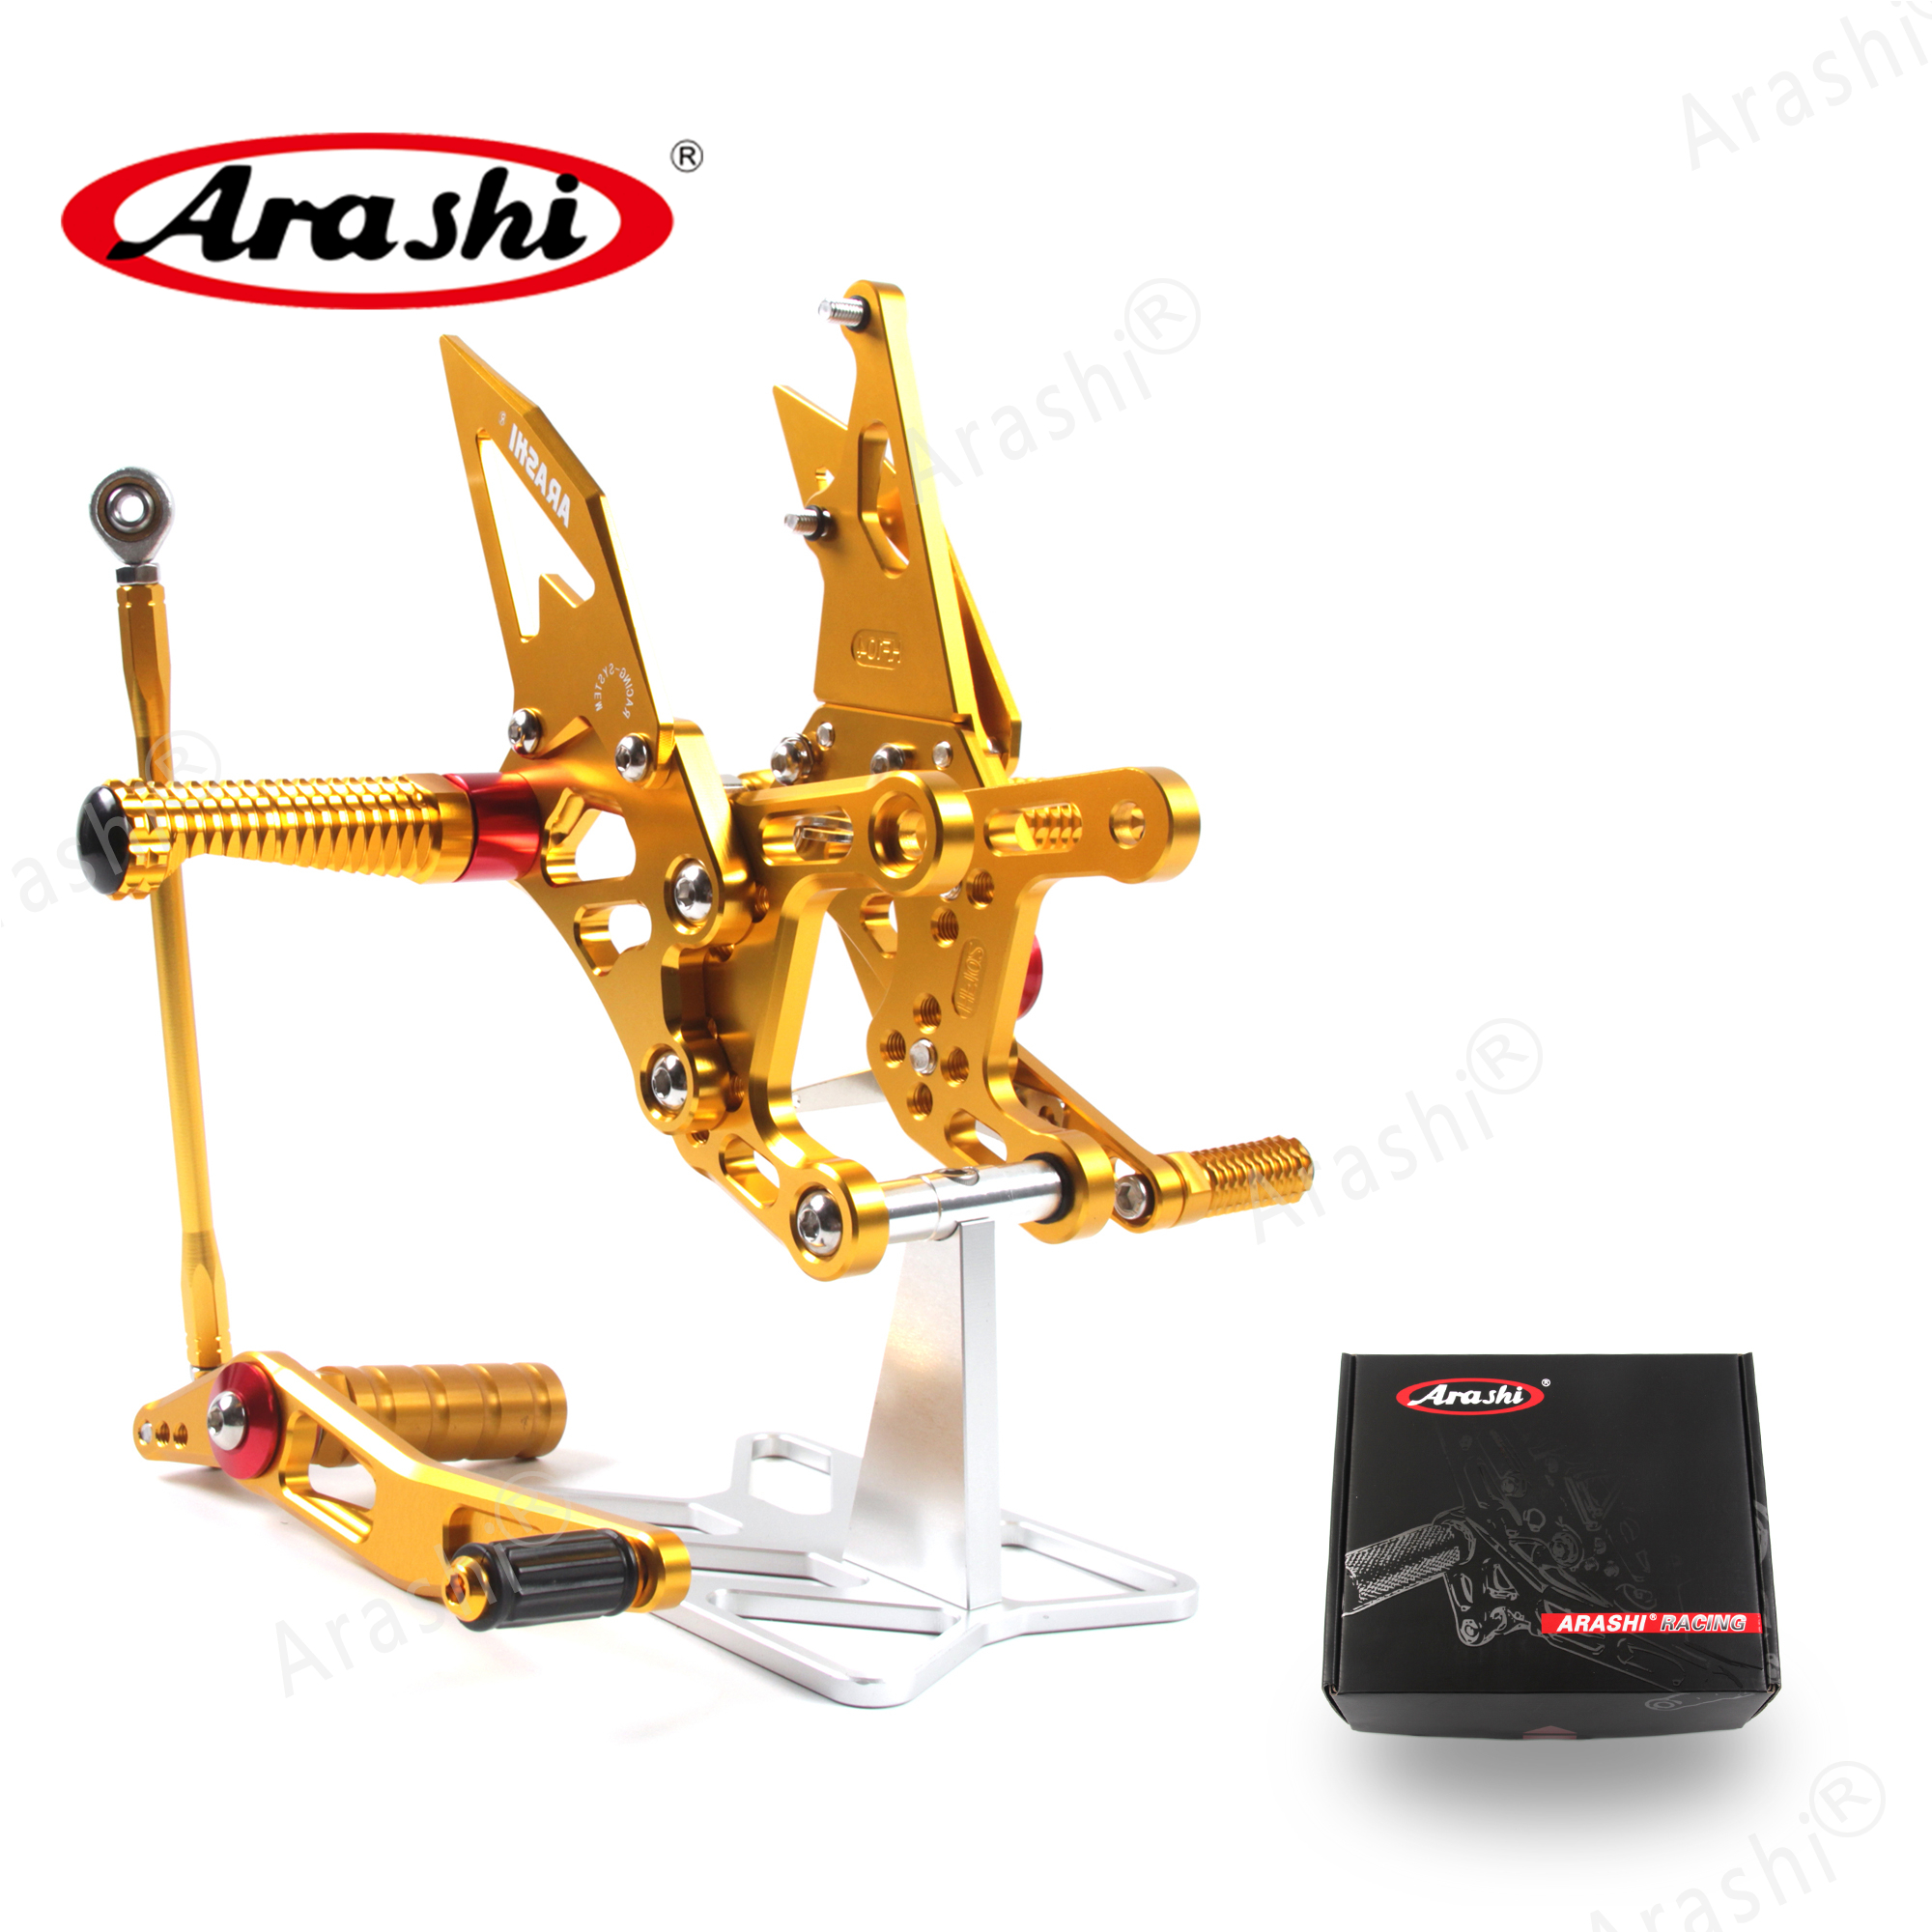 Arashi CNC Adjustable Footrests For YAMAHA YZF R1 2009 2010 2011 2012 2014 YZF-R1 Foot Pegs Rider Rearset Footrest Foot Rest